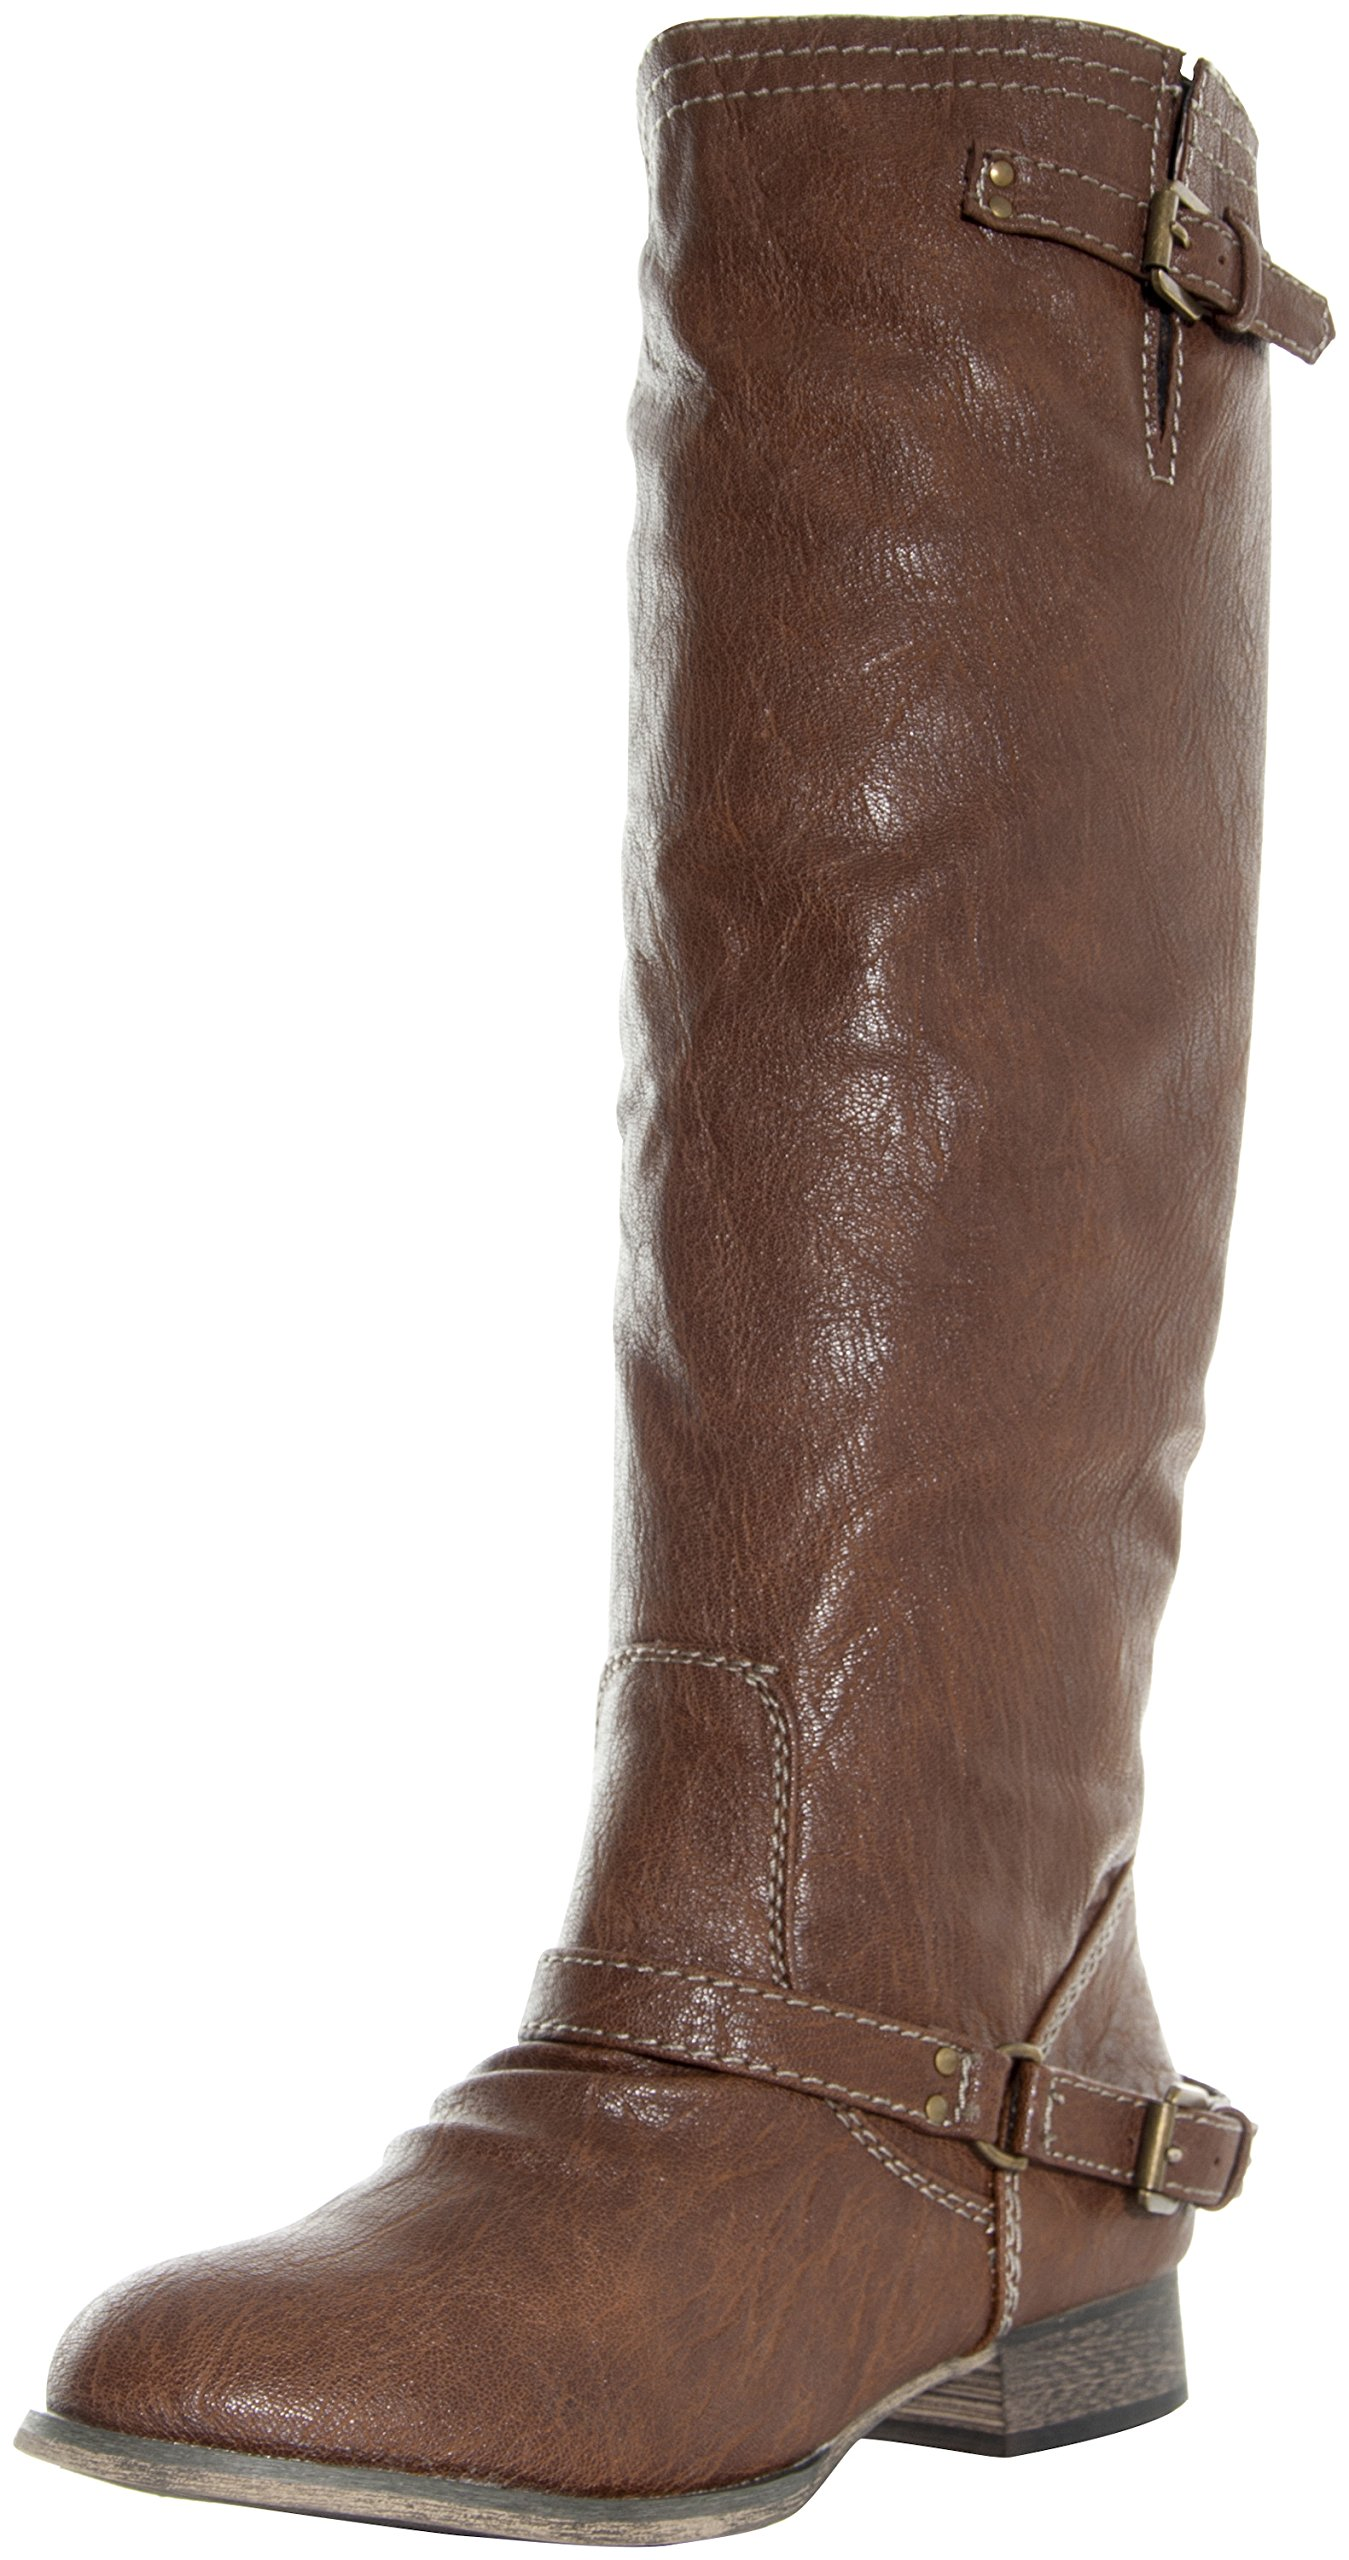 Breckelle's Outlaw-81 Vegan Leather Mid Calf Round Toe Motorcycle Boots TAN (6)